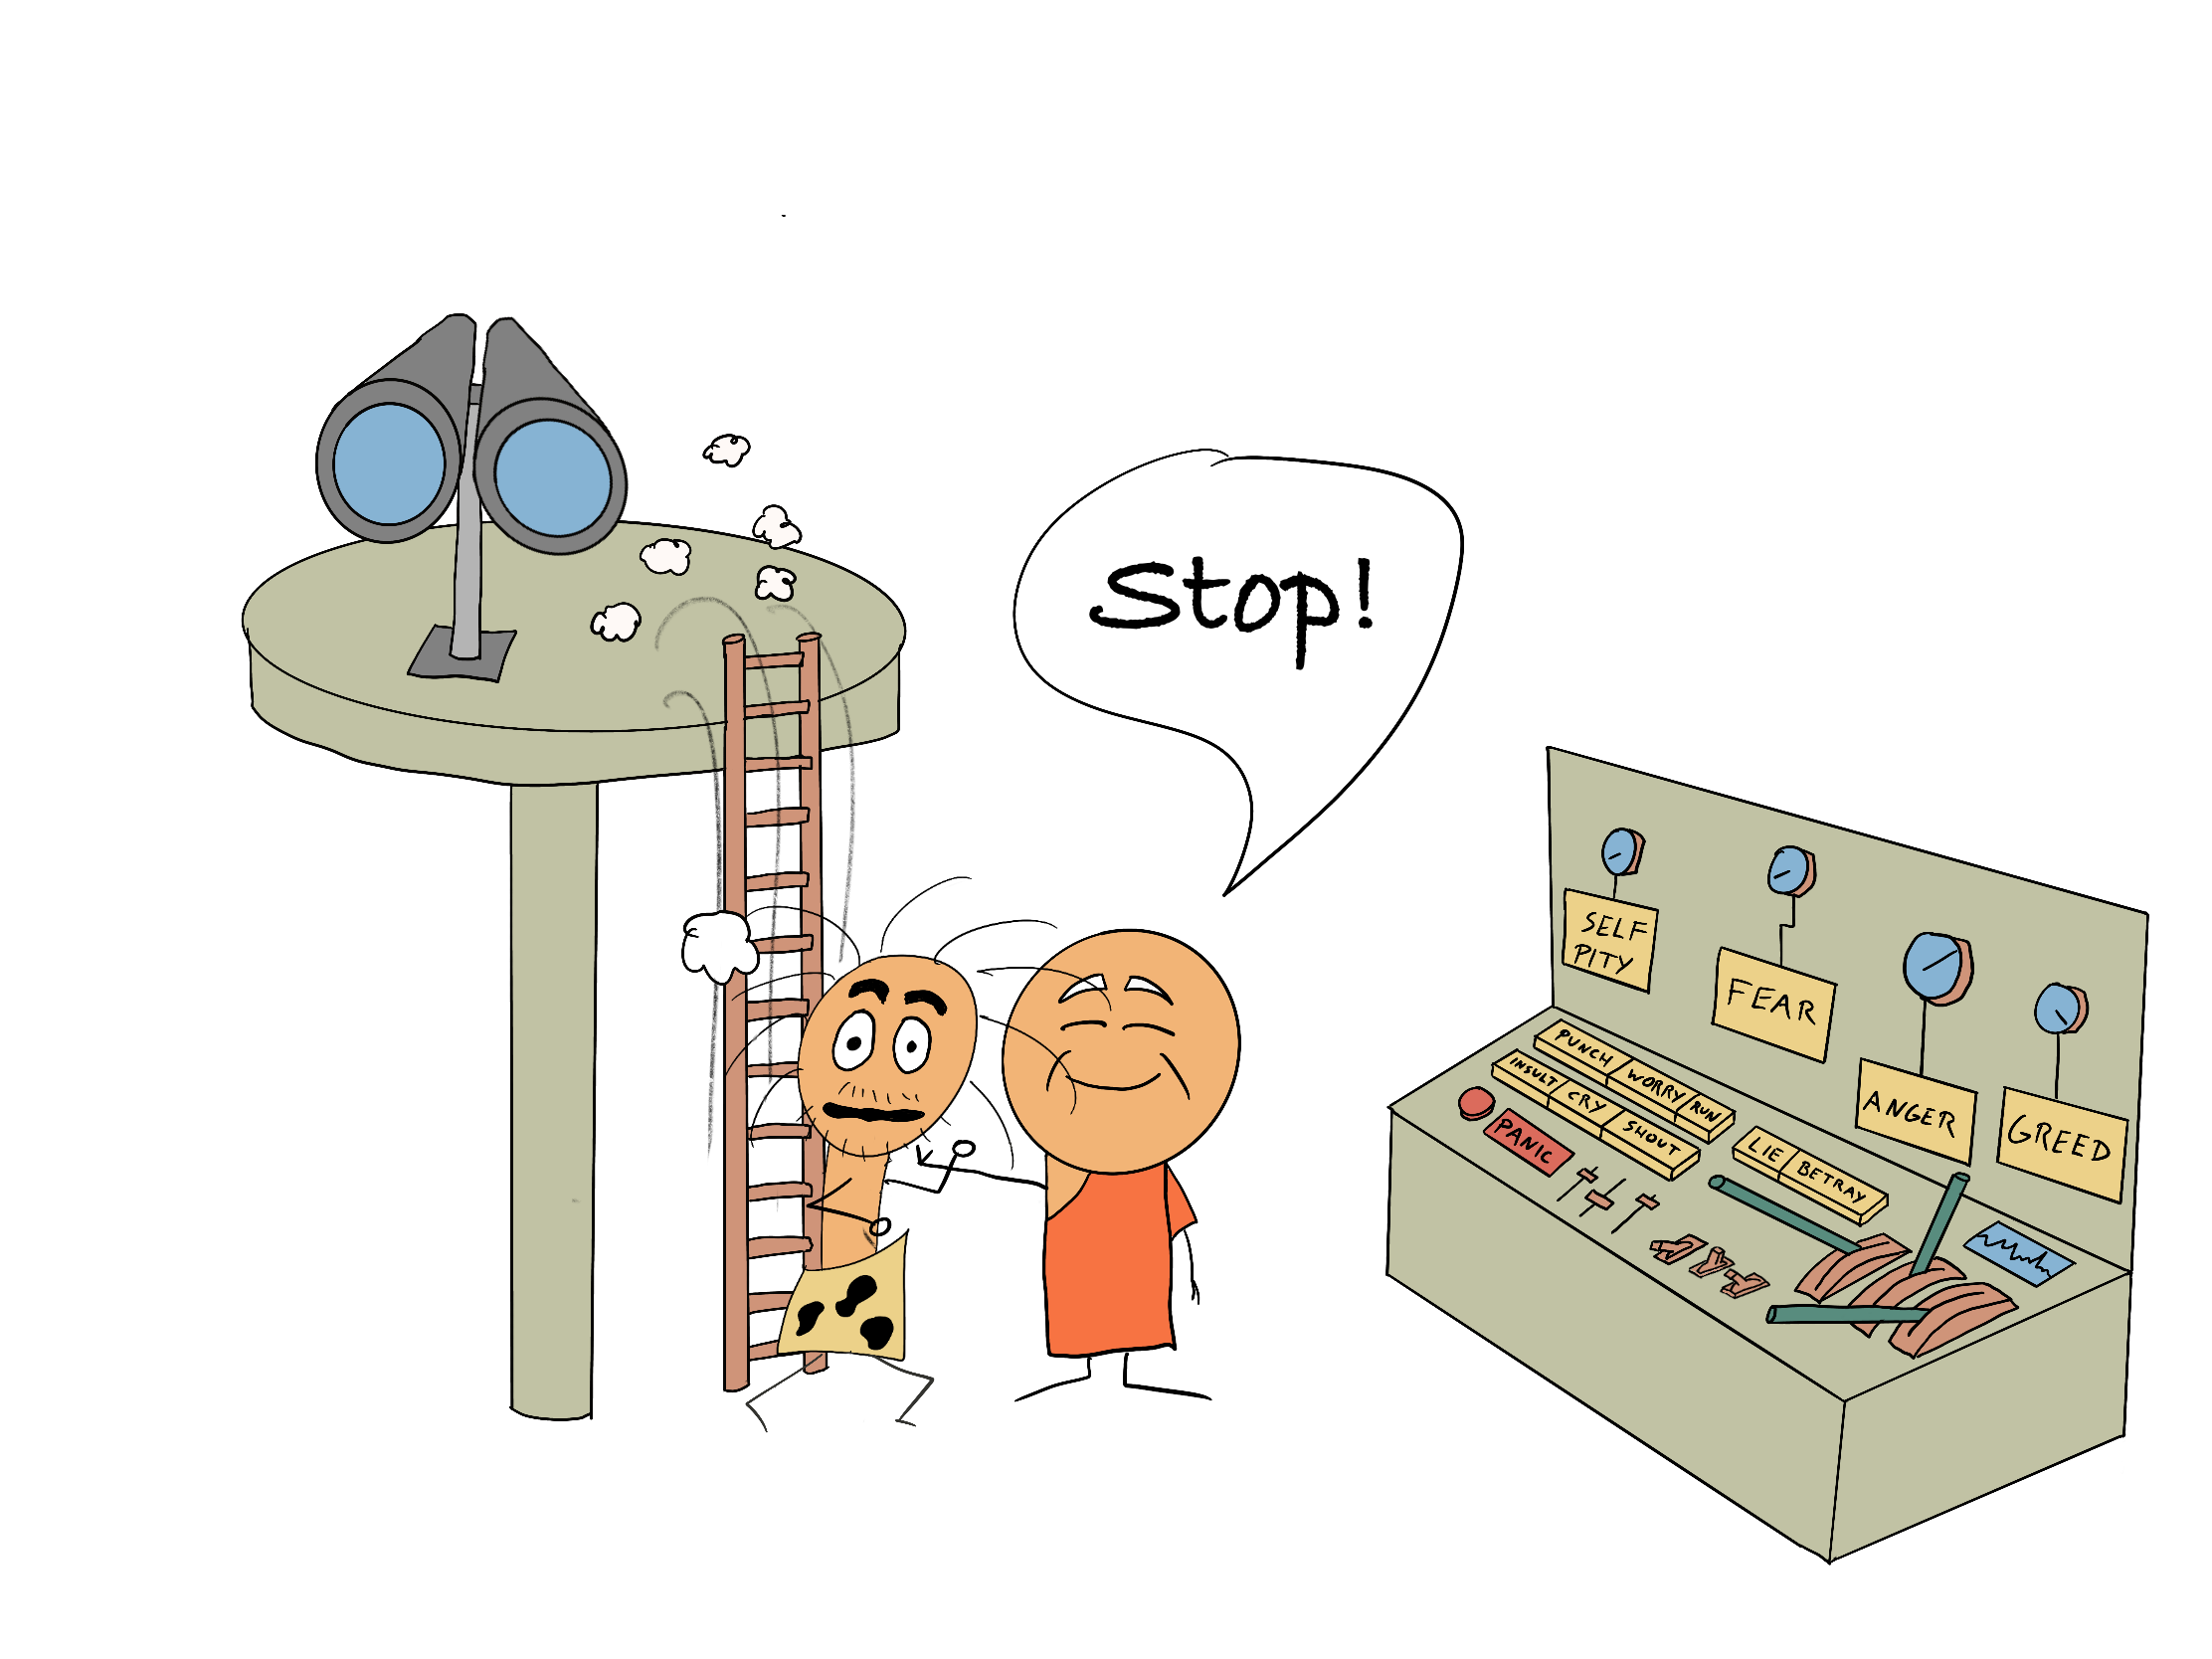 A monk stopping the Primitive Self from accessing the control station